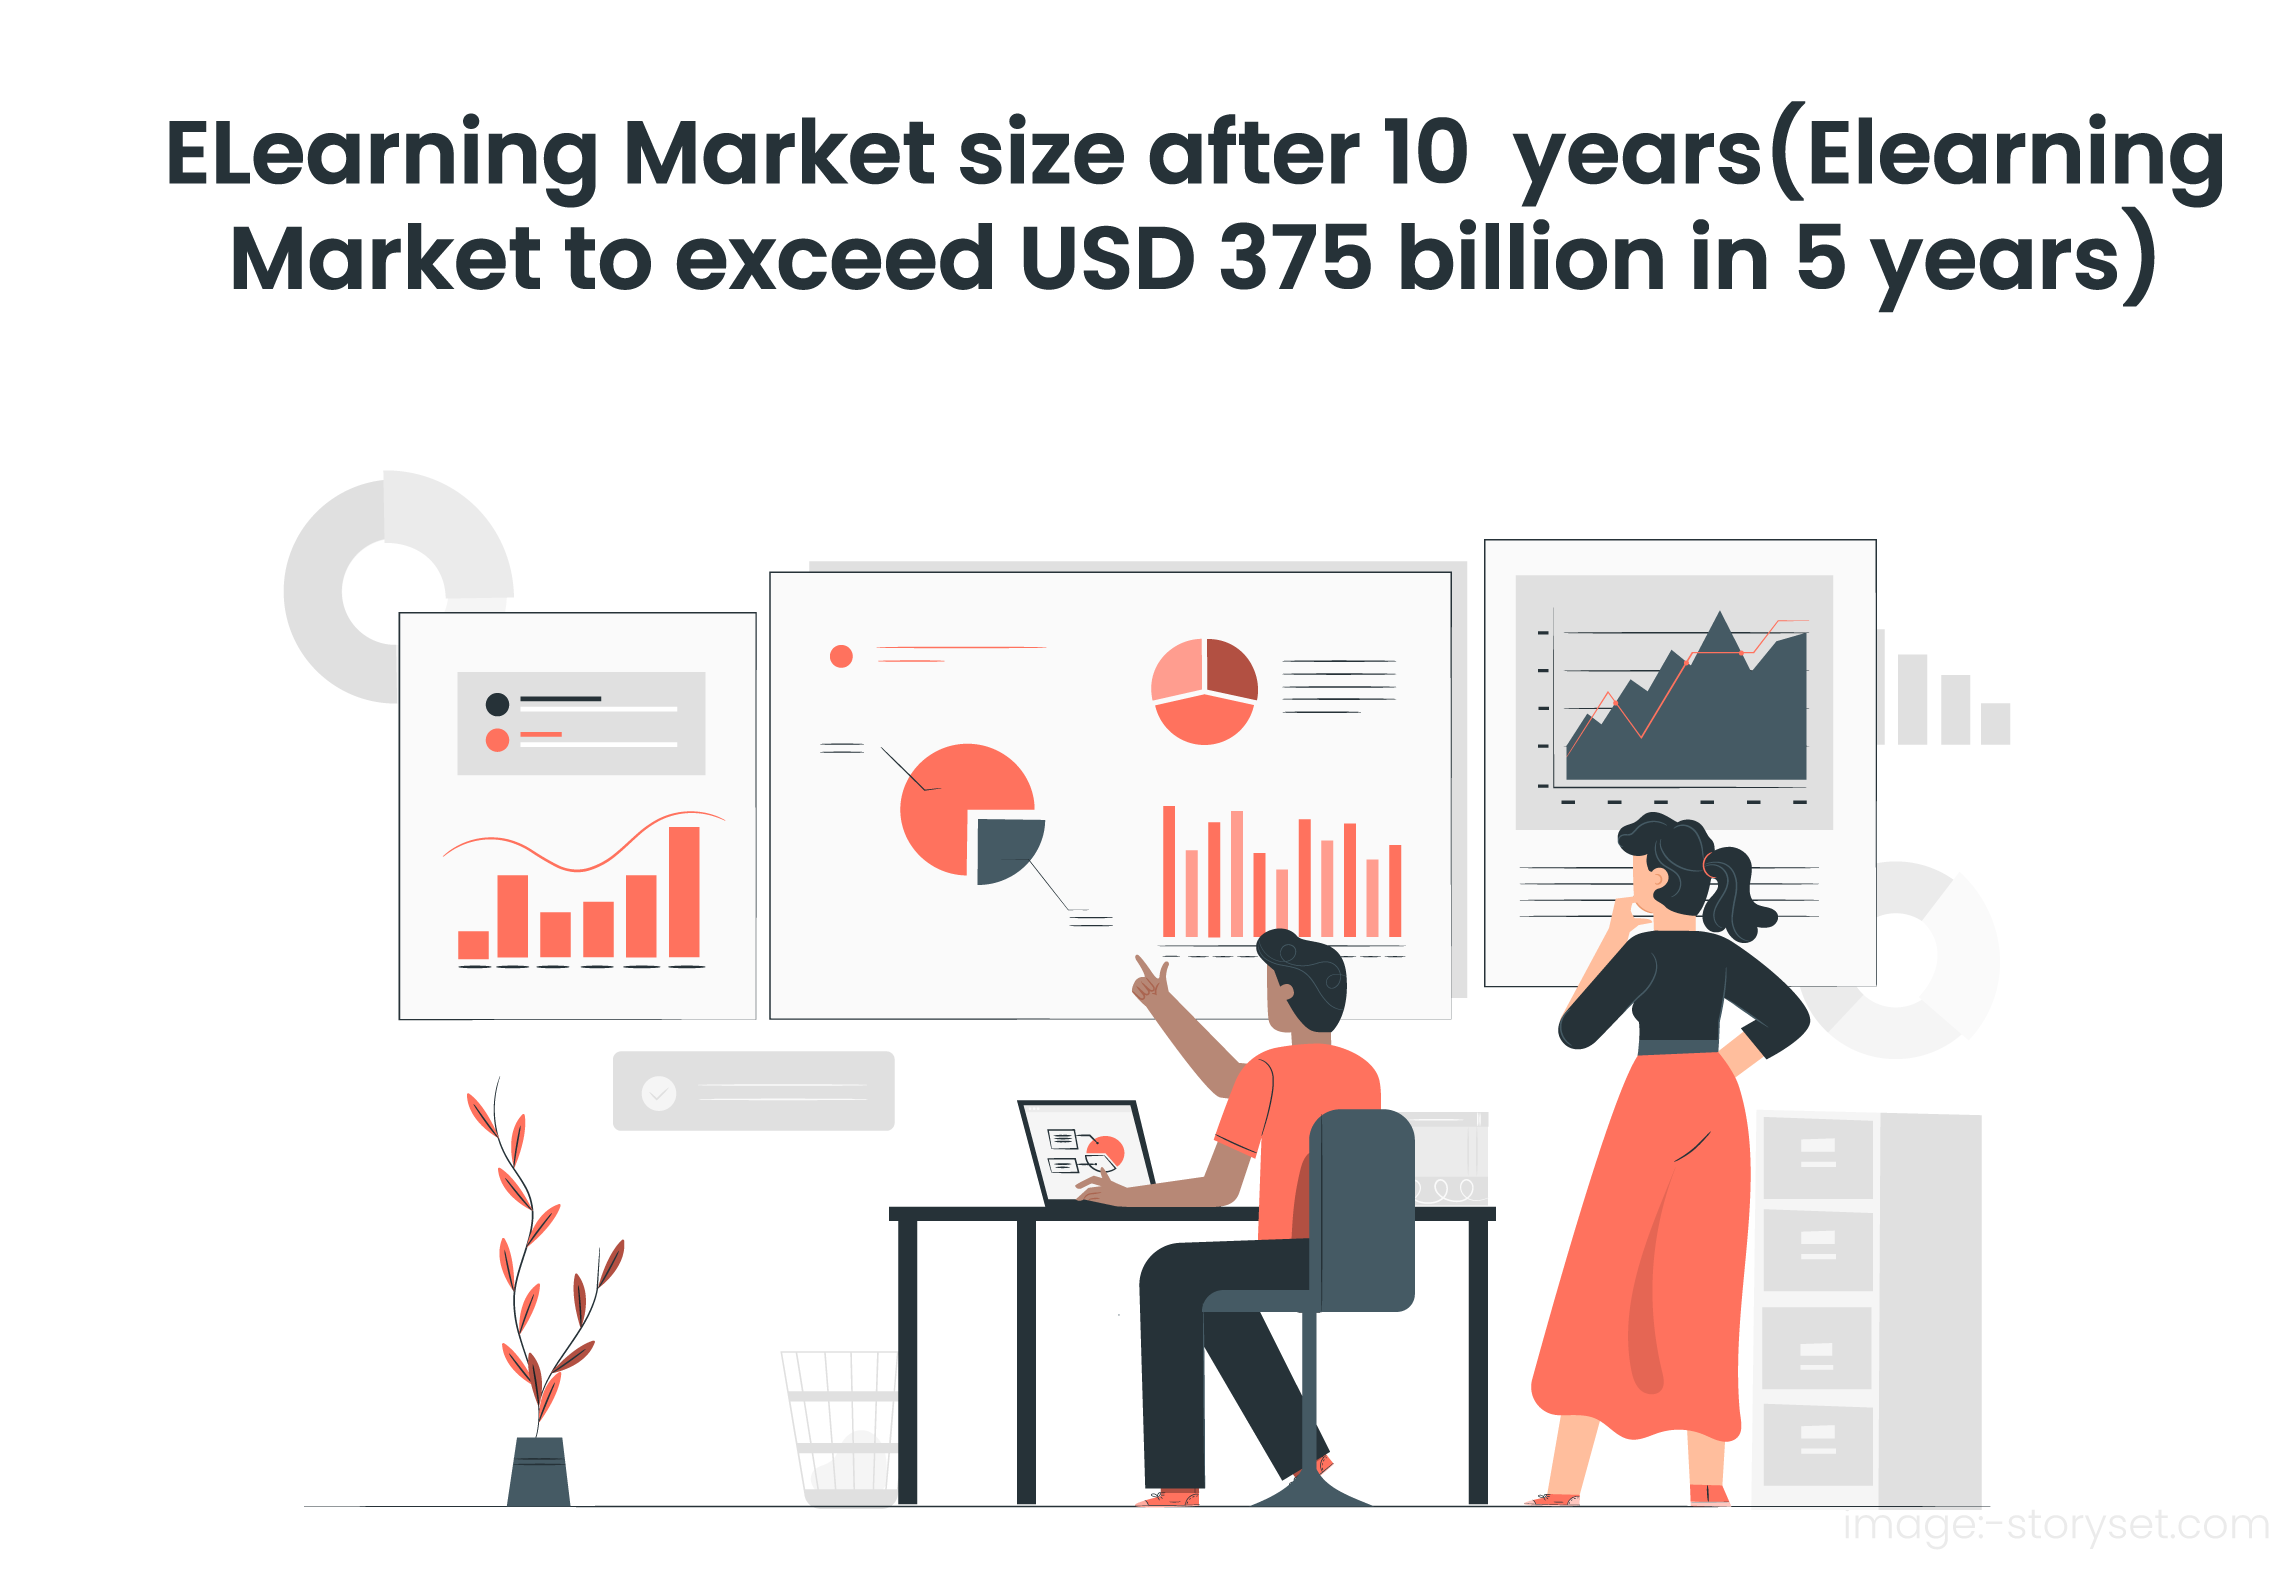 ELearning Market size after 10 years (Elearning Market to exceed USD 375 billion in 5 years)